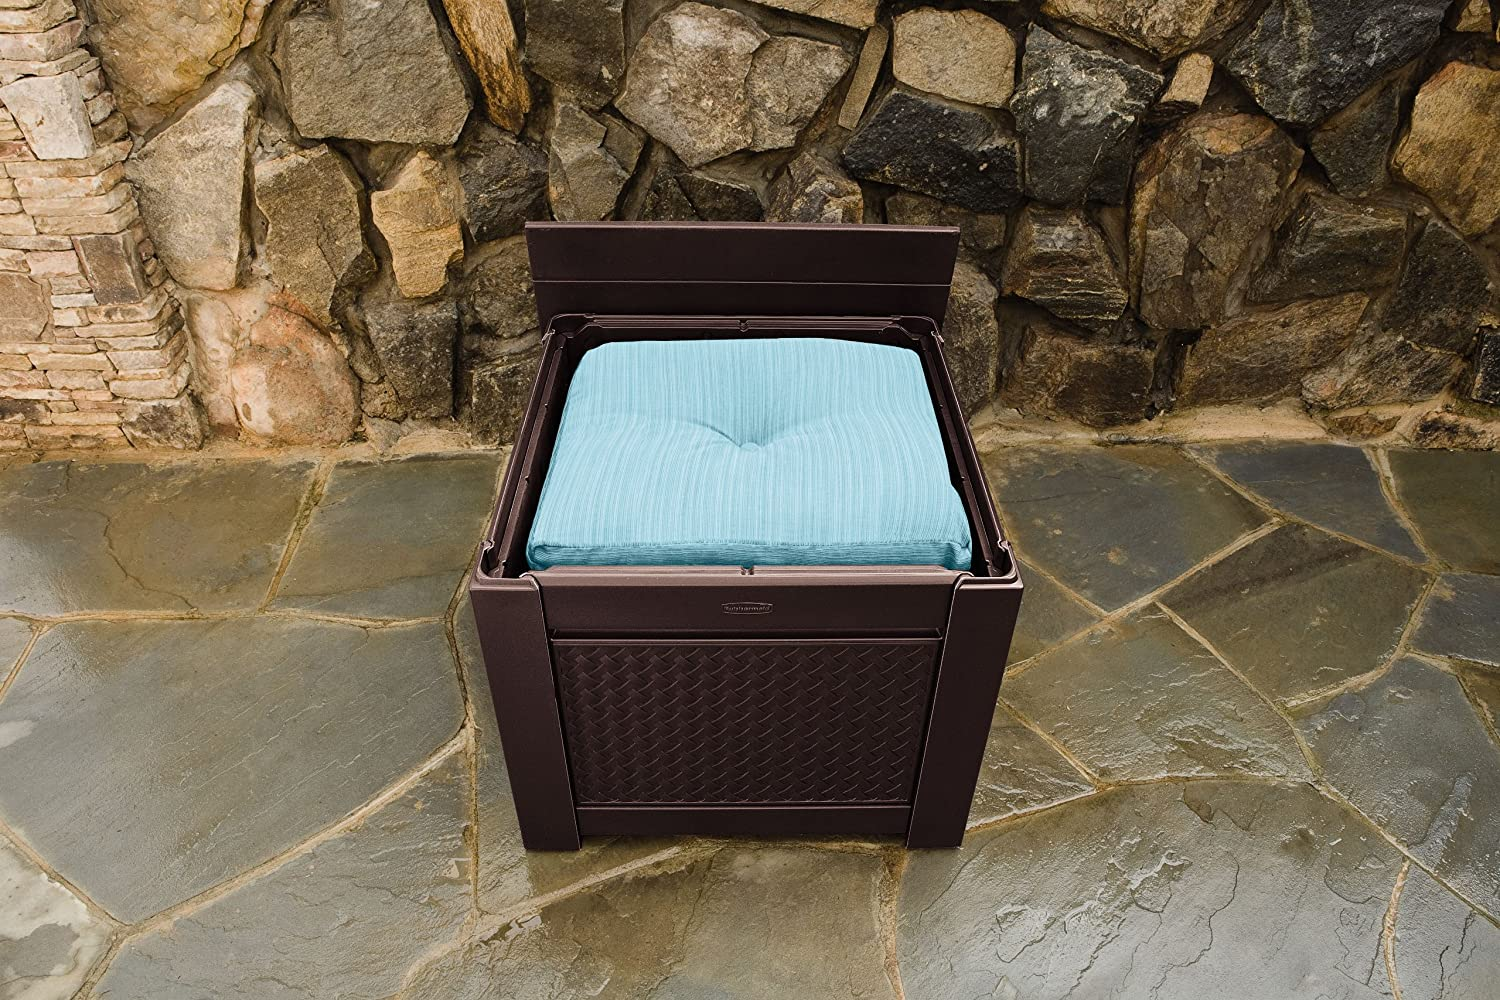 Amazon.com: Rubbermaid Cube Patio Chic Outdoor Storage, Dark Teak Basket  Weave: Garden U0026 Outdoor